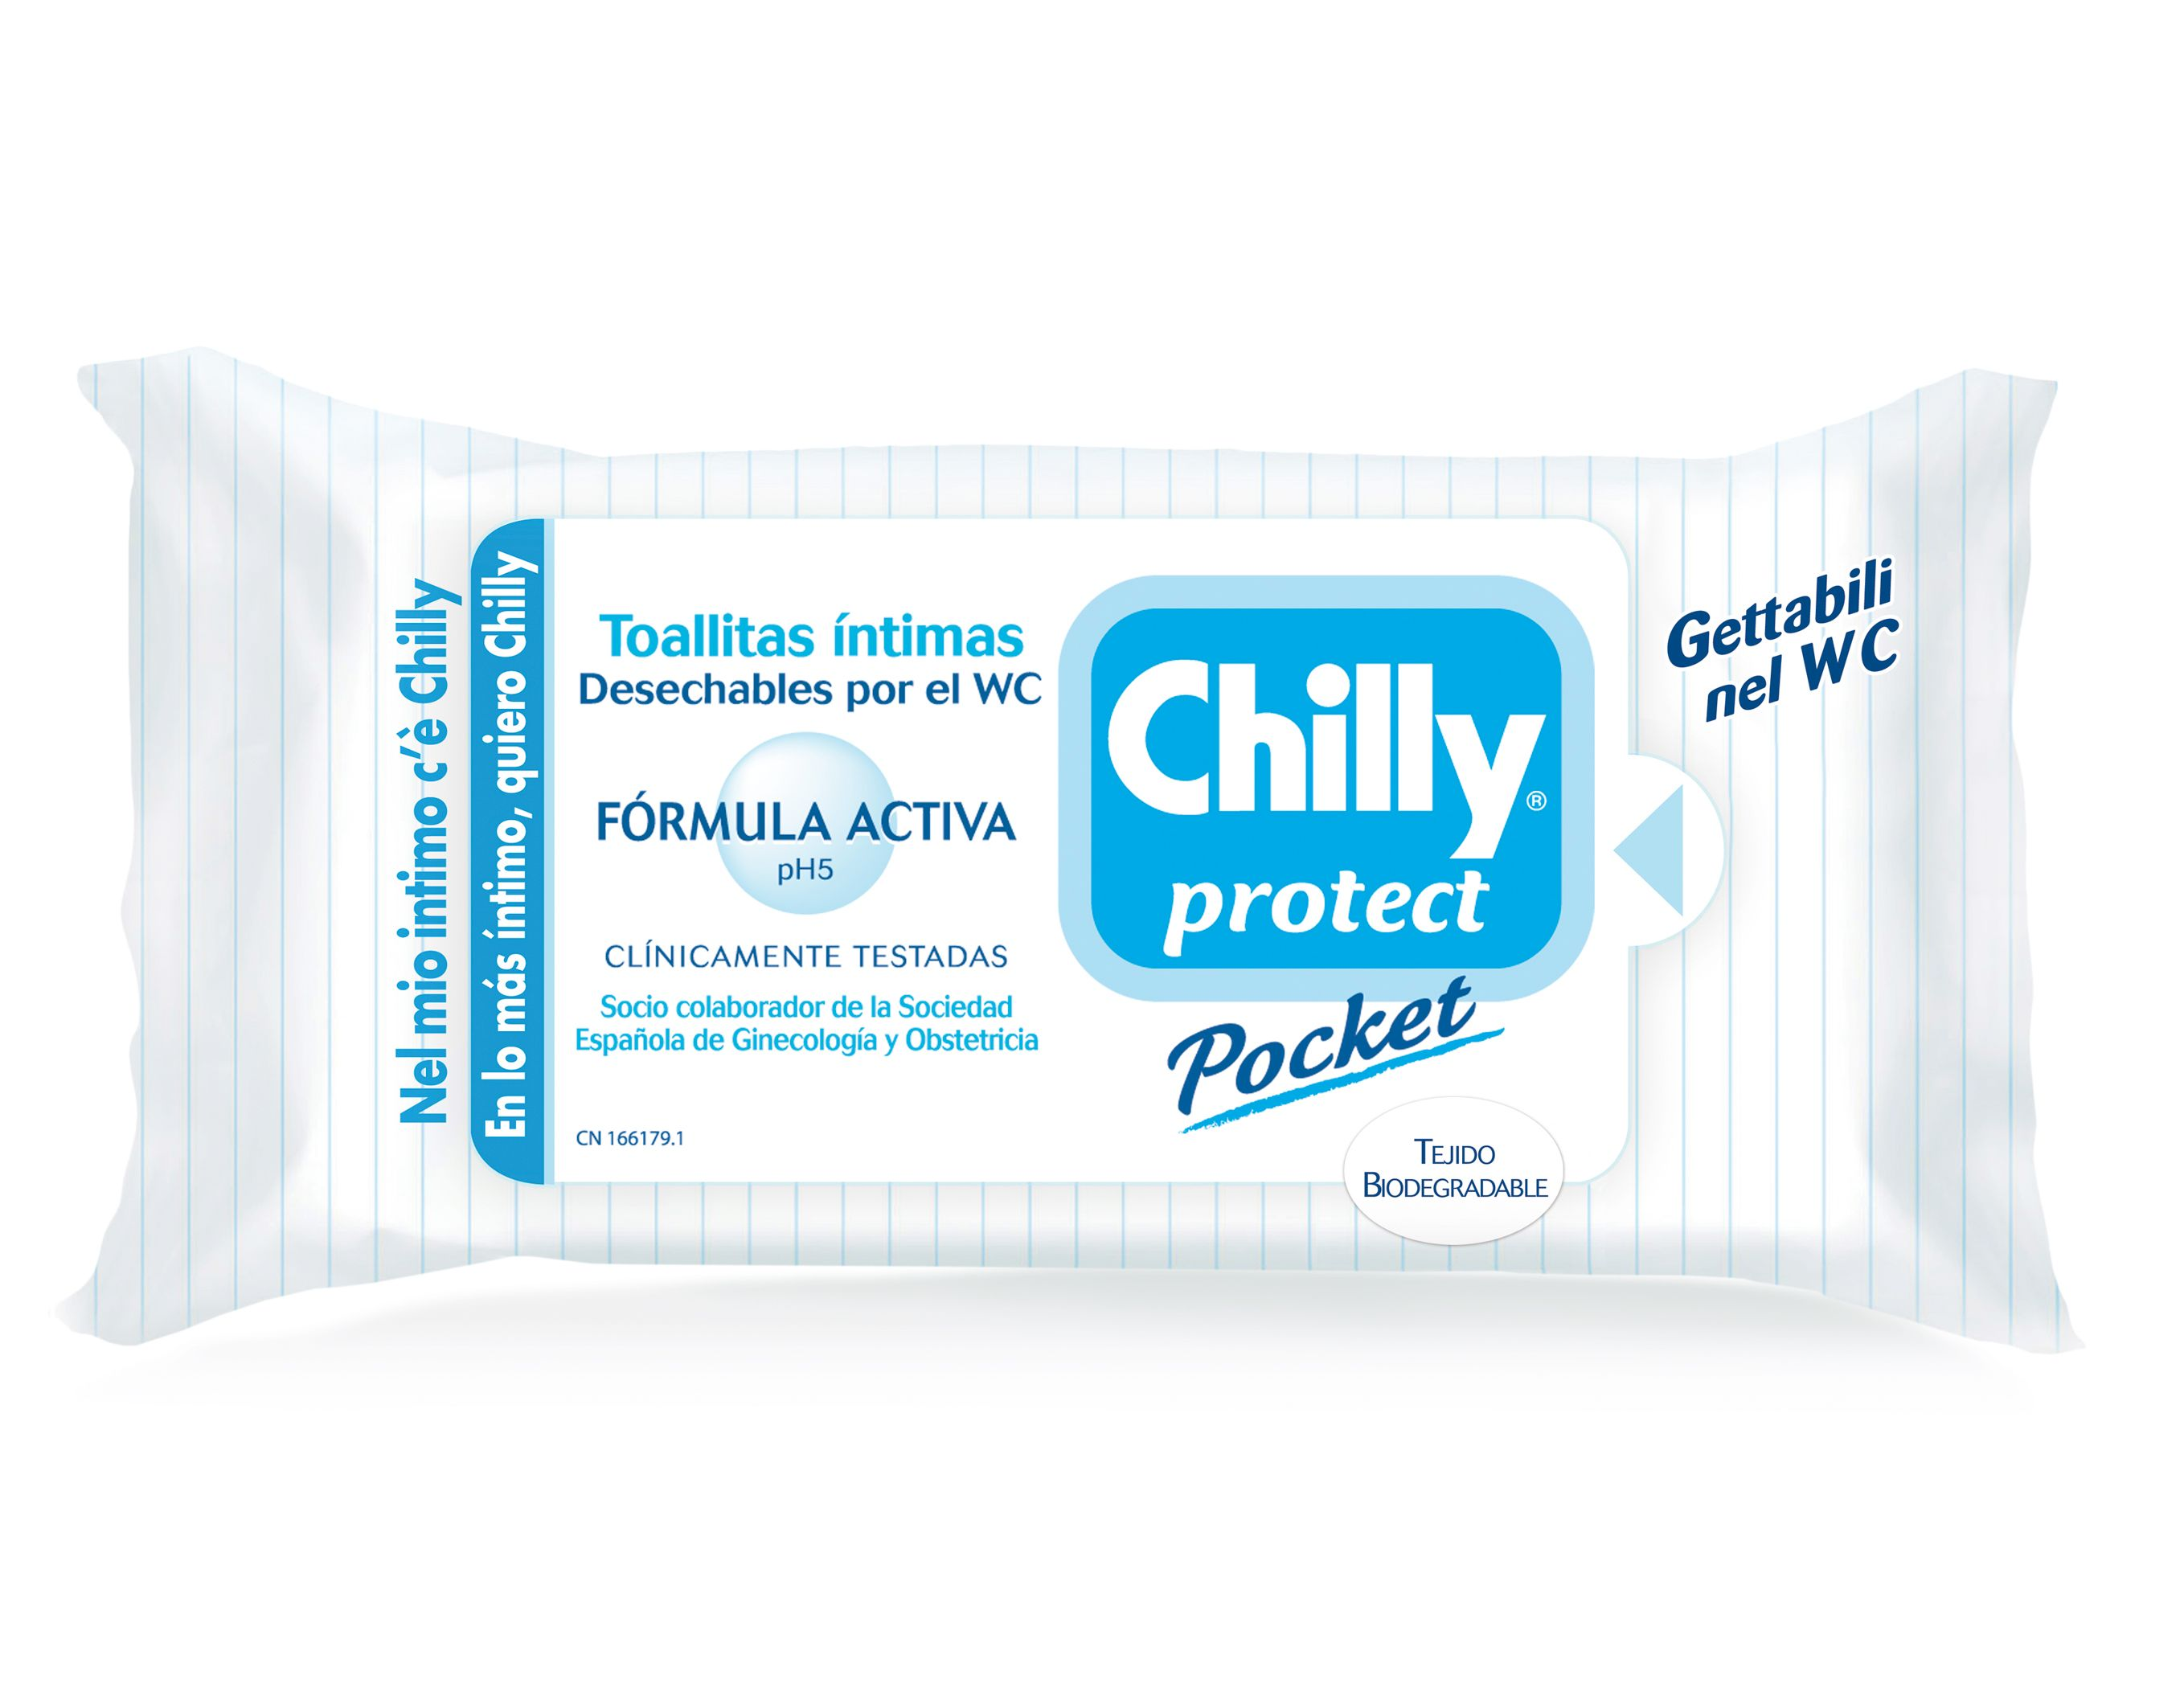 CHILLY PROTECT POCKET